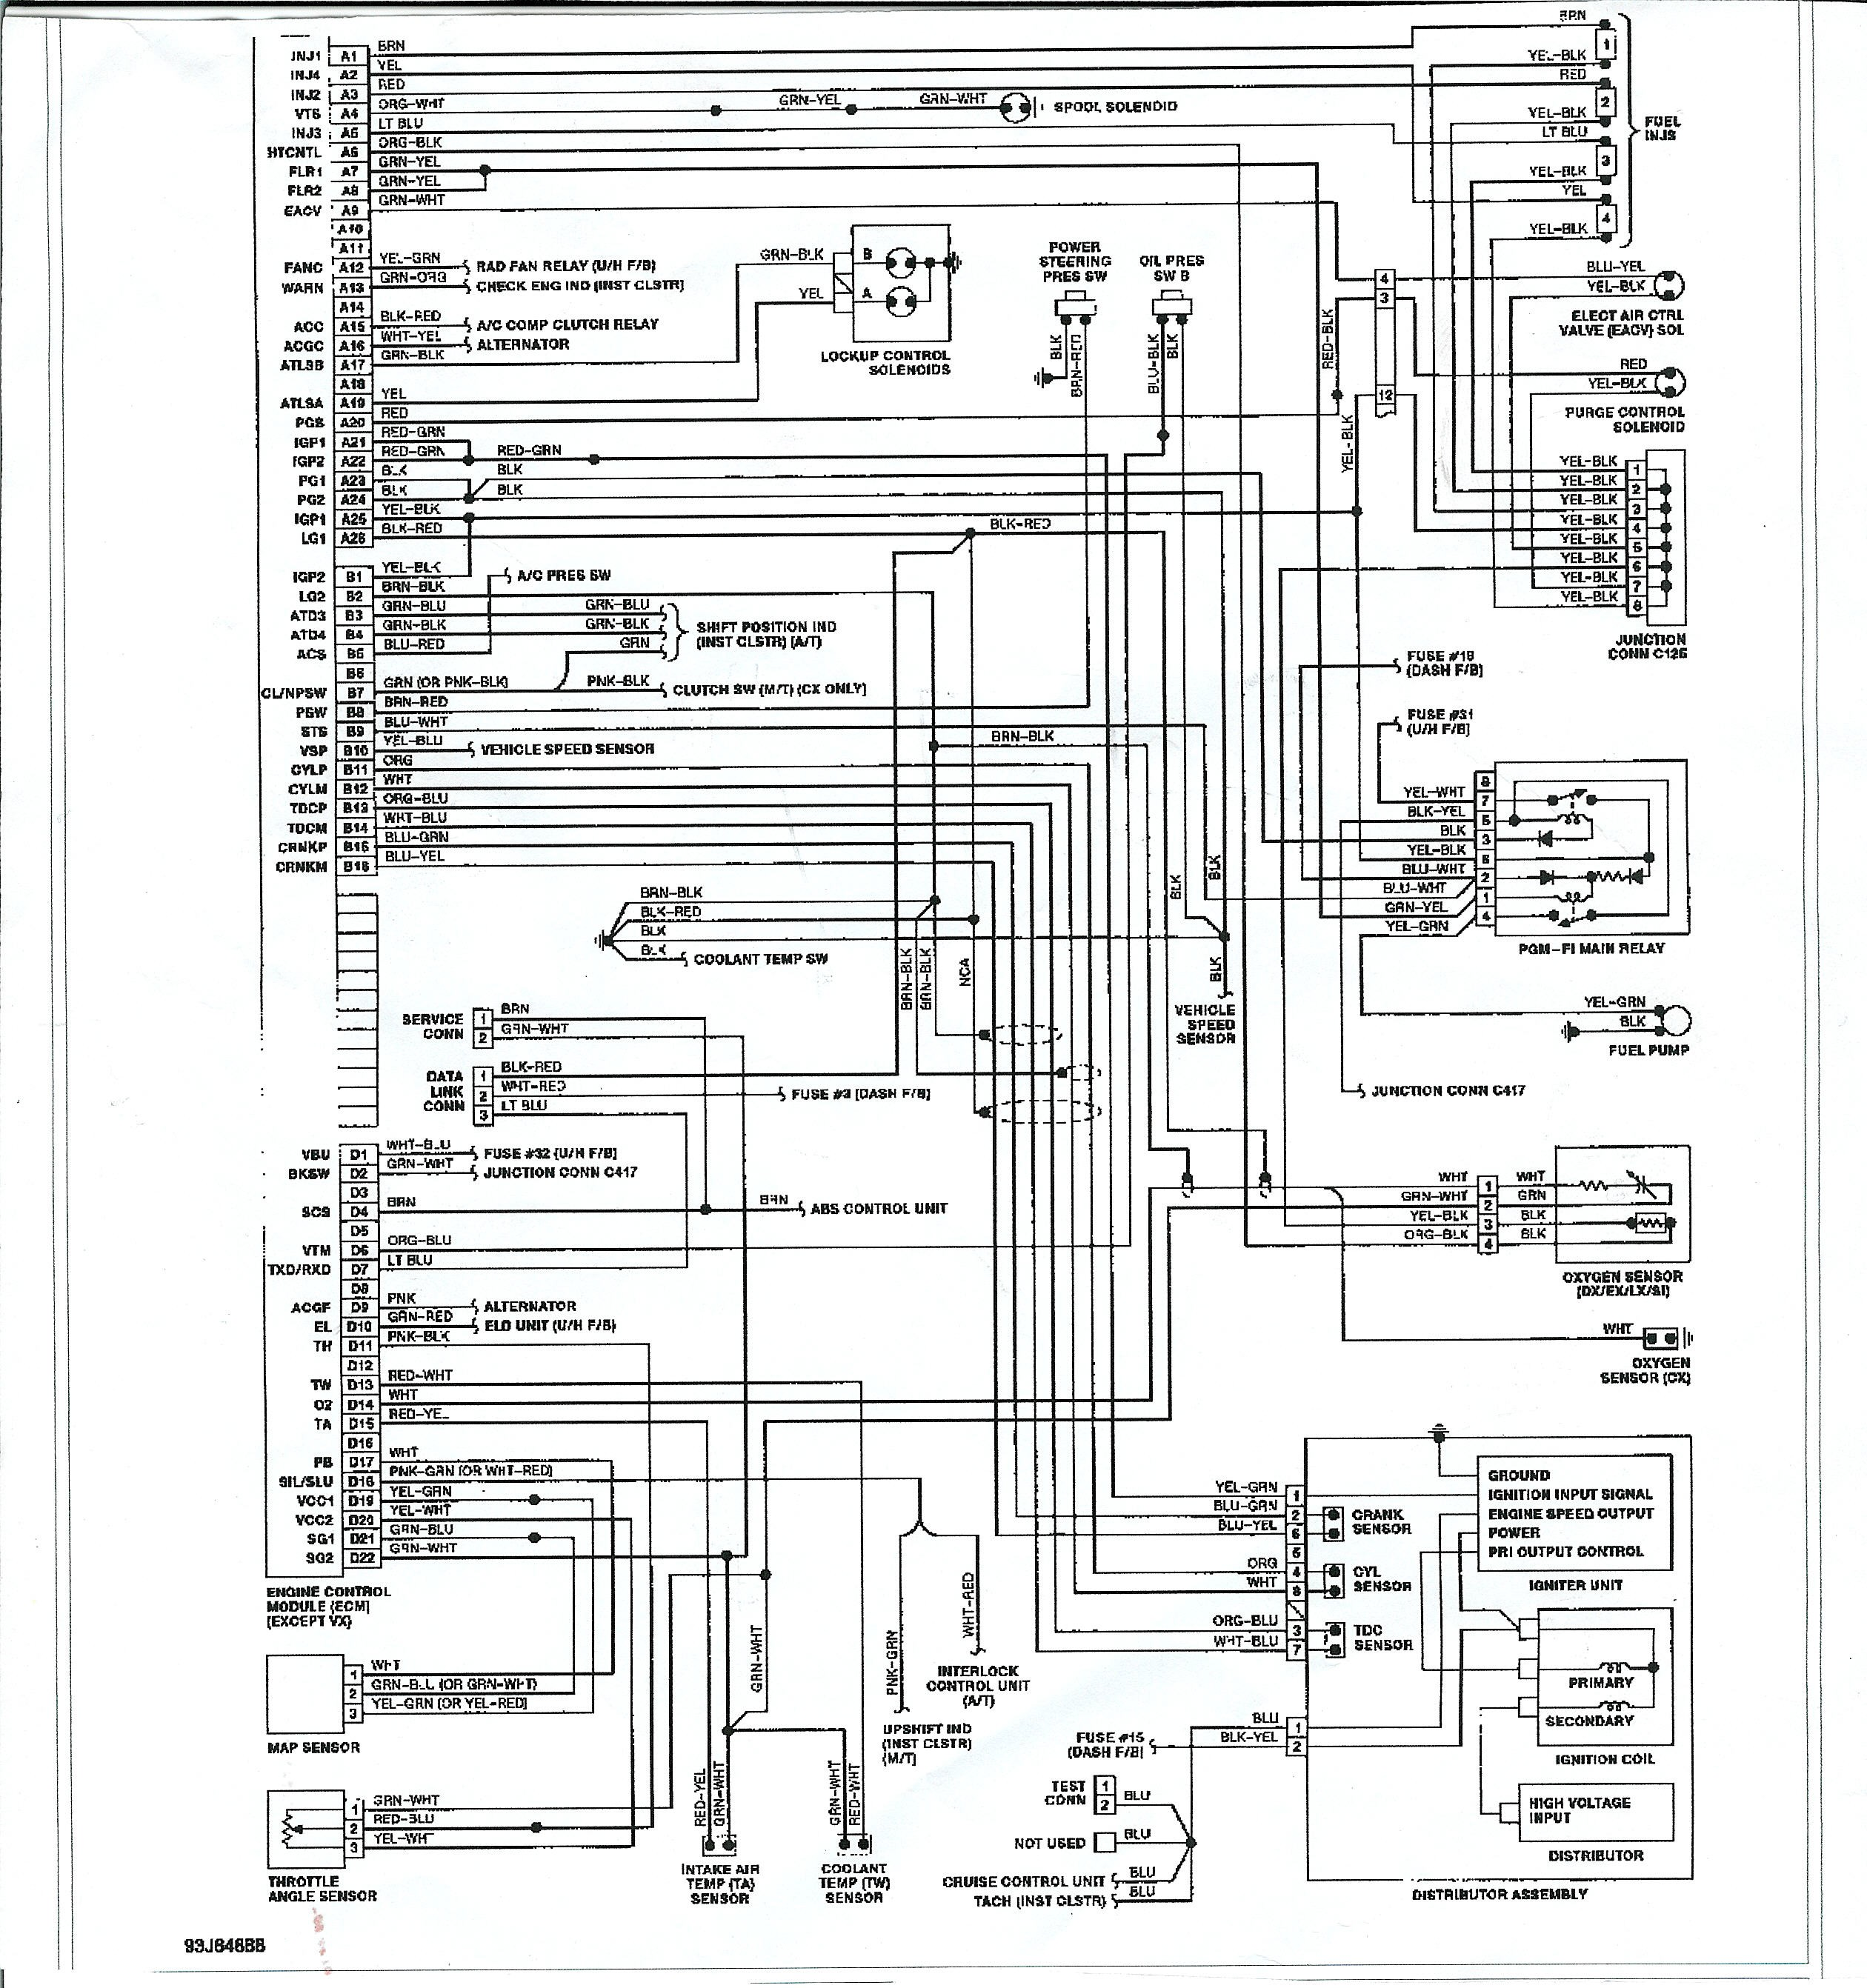 1990 Honda Accord Engine Diagram Awesome Wiring Diagram Honda Civic  Everything You Need to Of 1990